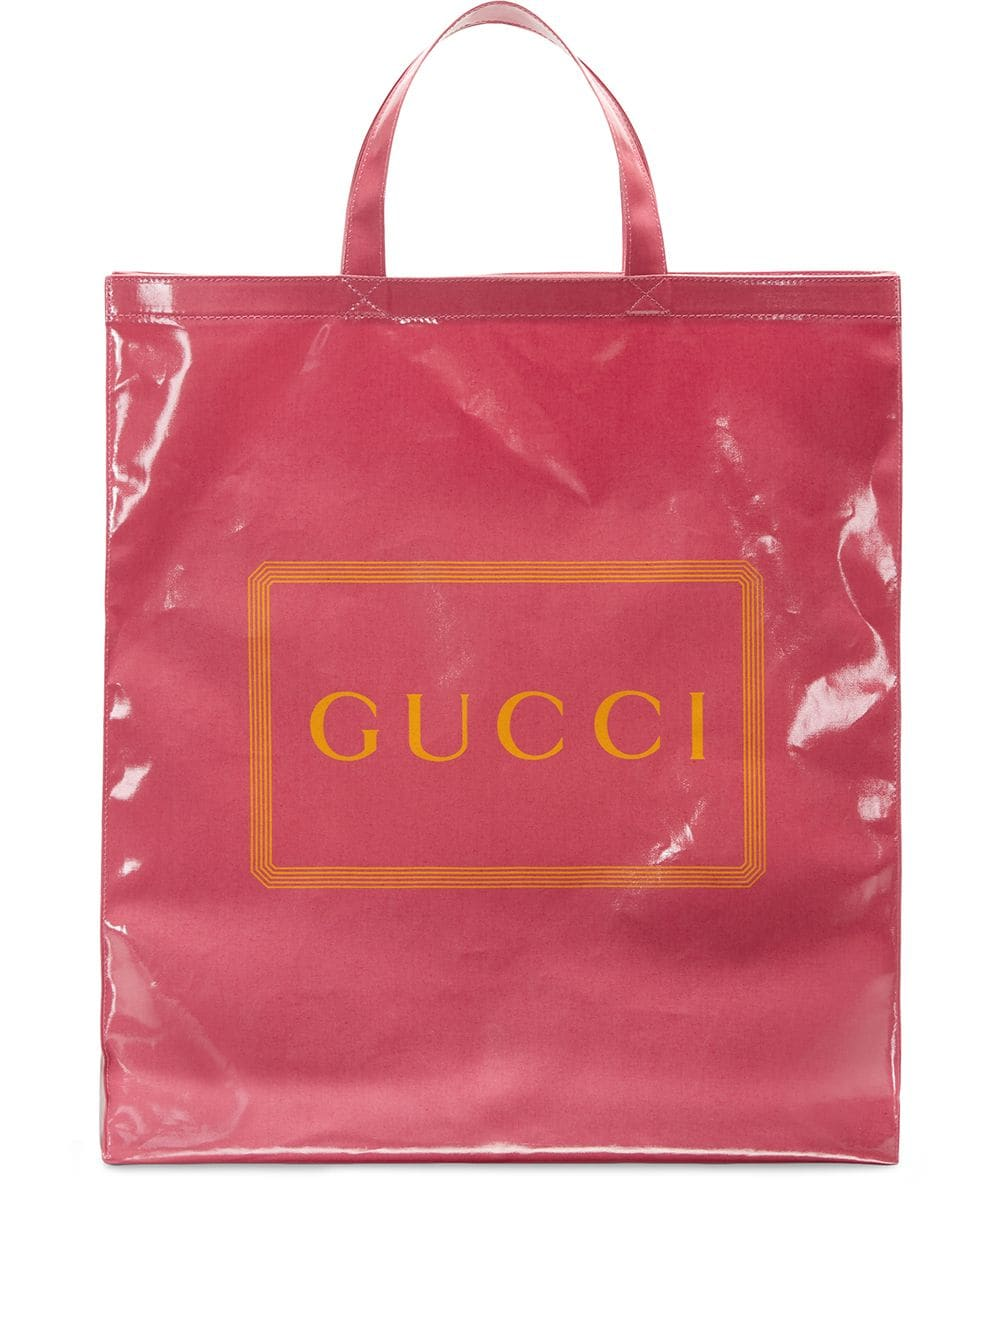 Gucci Logo Print Medium Tote Bag